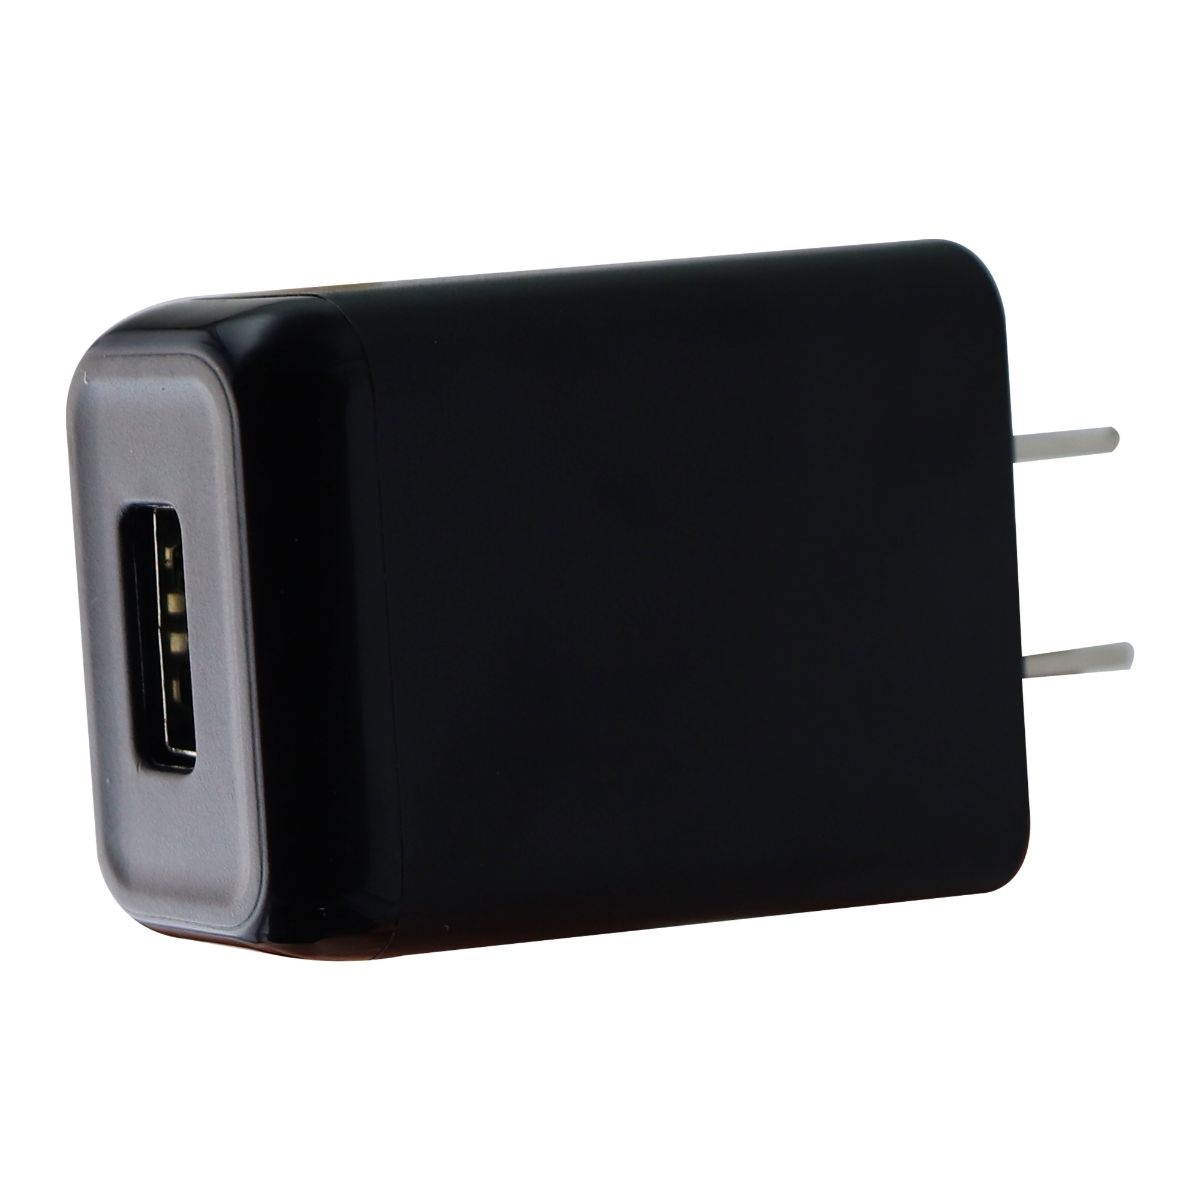 KEY 2.4A Wall Charger W/ USB Port - Black